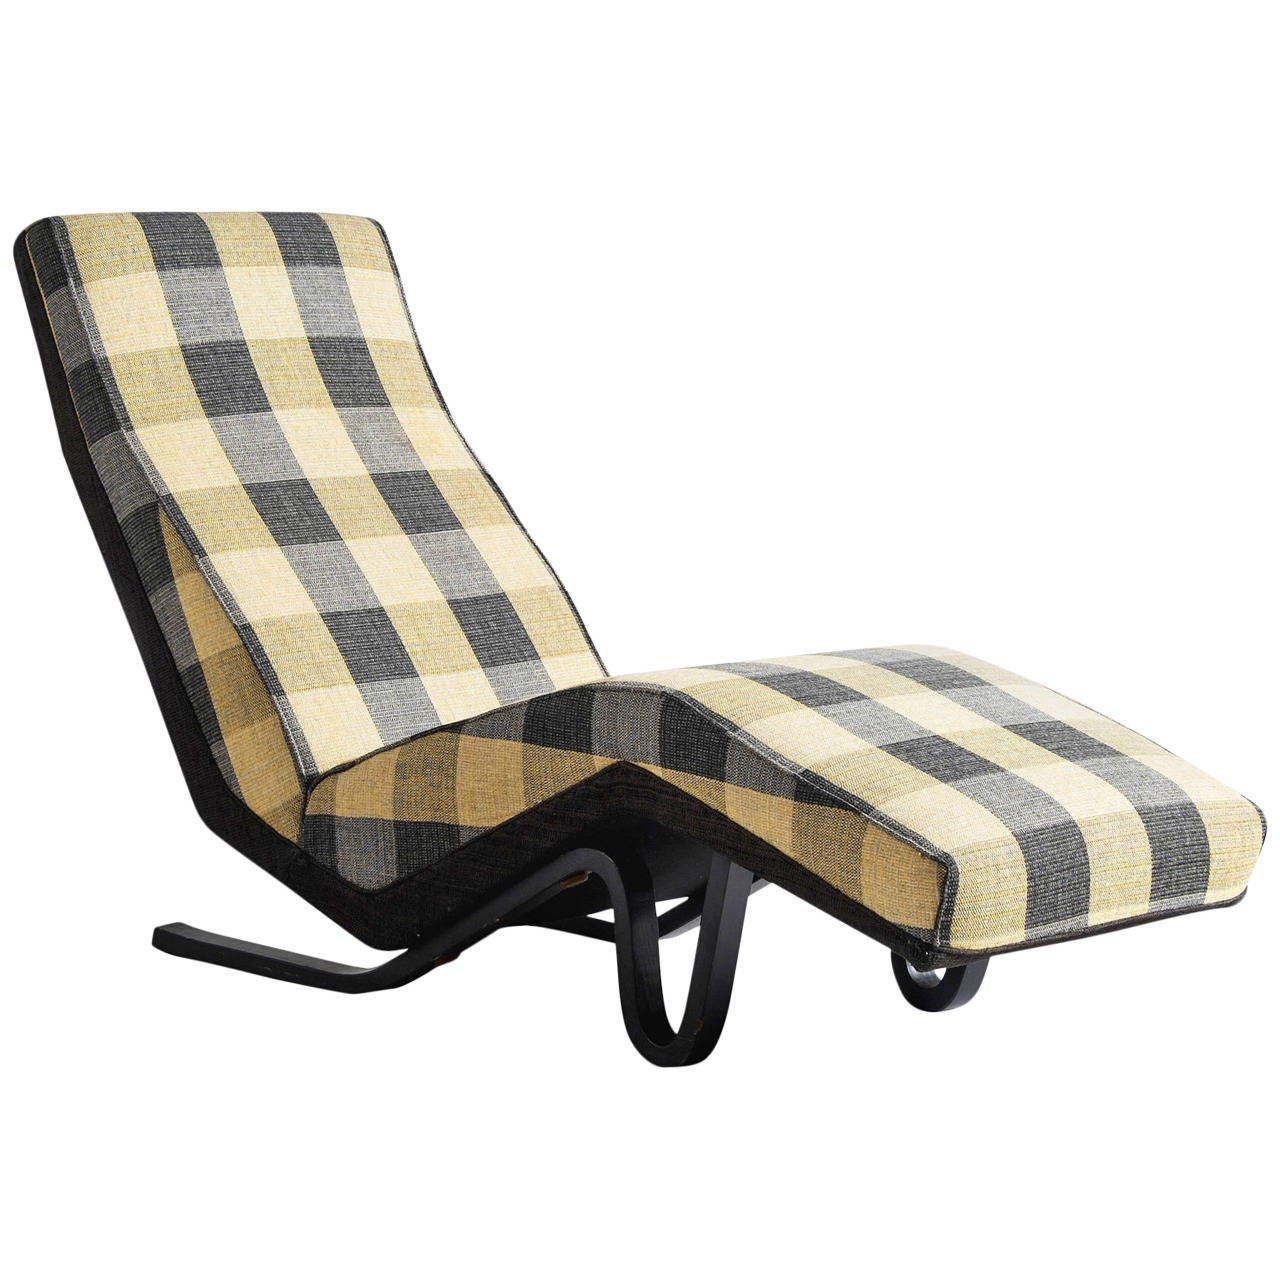 Andrew j milne chaise longue for sale at 1stdibs for Chaise longue for sale